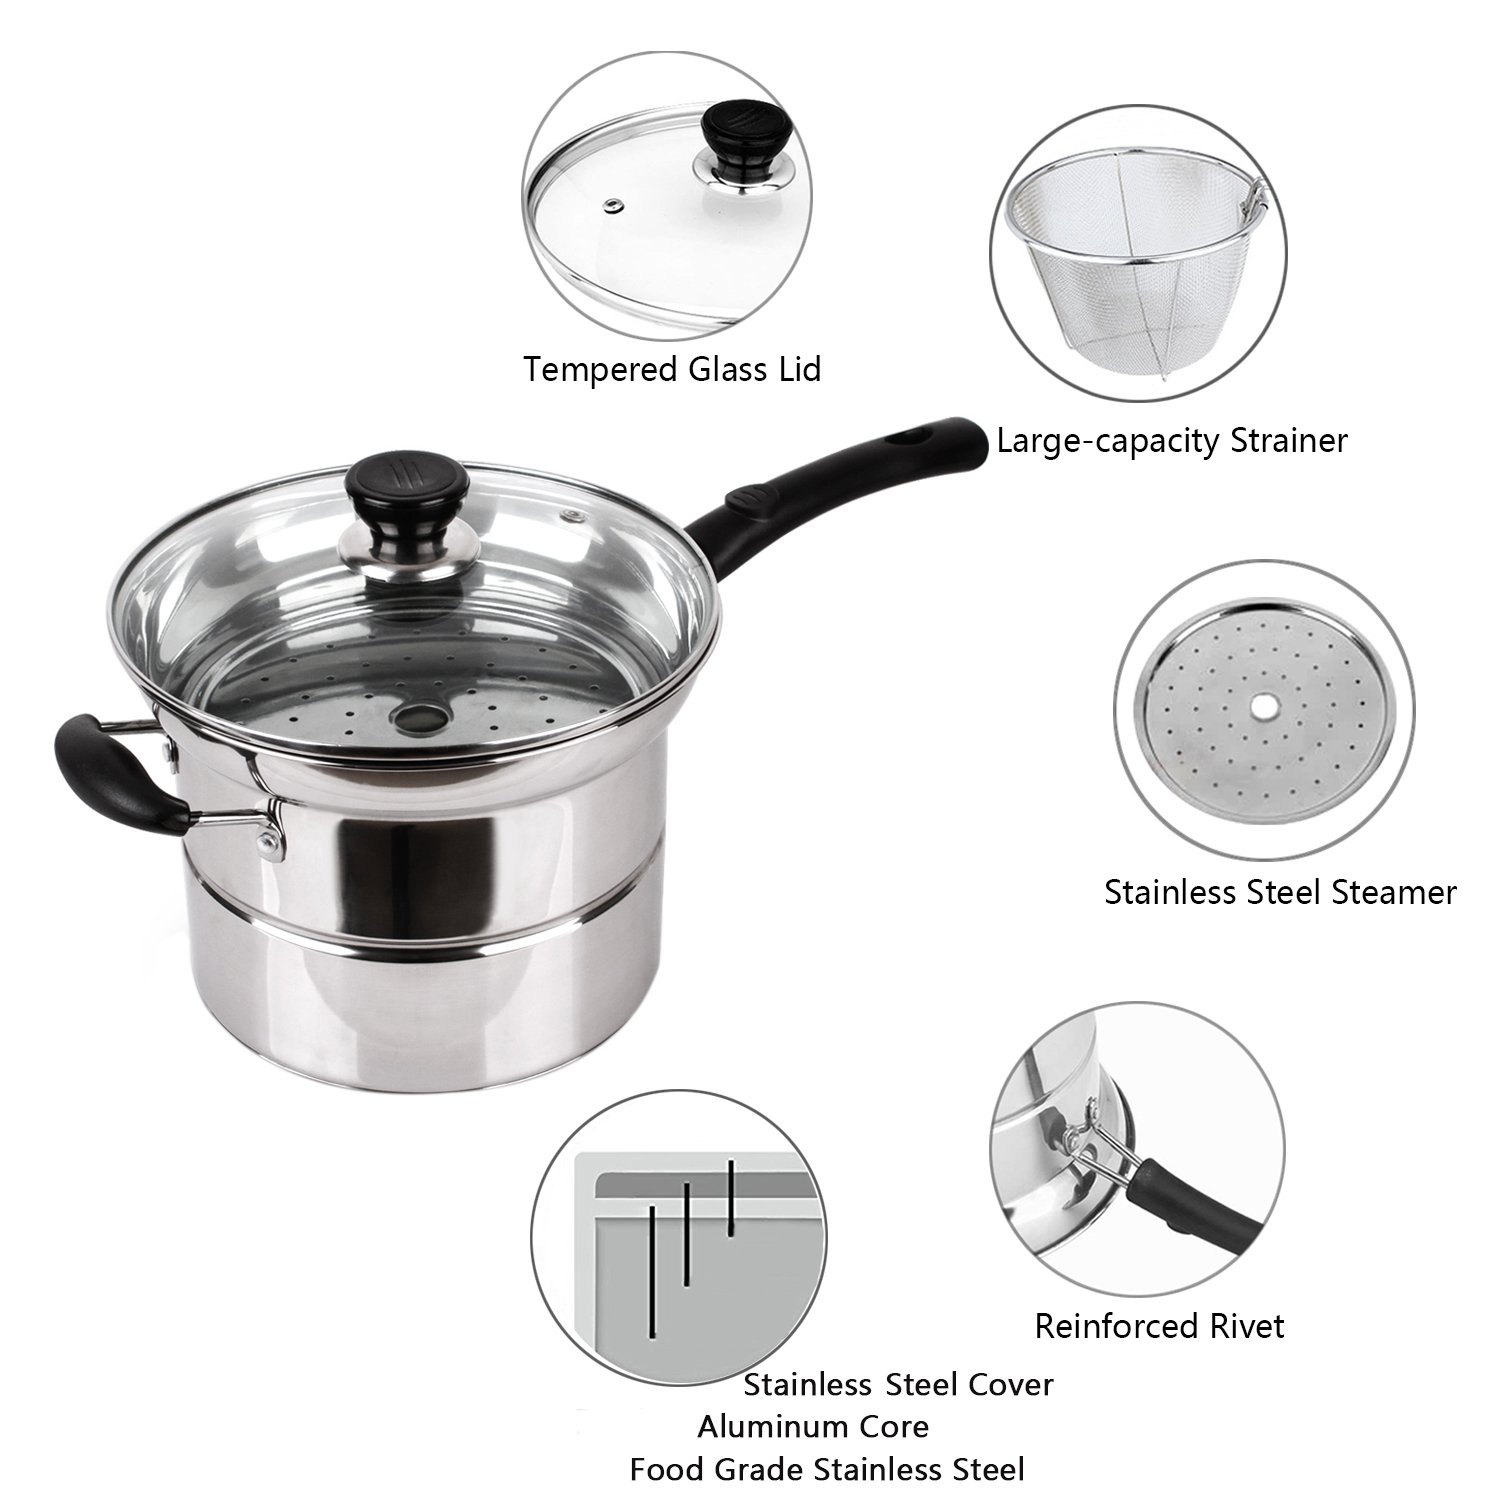 4-piece Pasta Pot Set,Sauran Stainless Steel Durable Sauce Pot with Steamer and Strainer Insert,Multi-purpose Pots with Double-bottom by Sauran (Image #5)